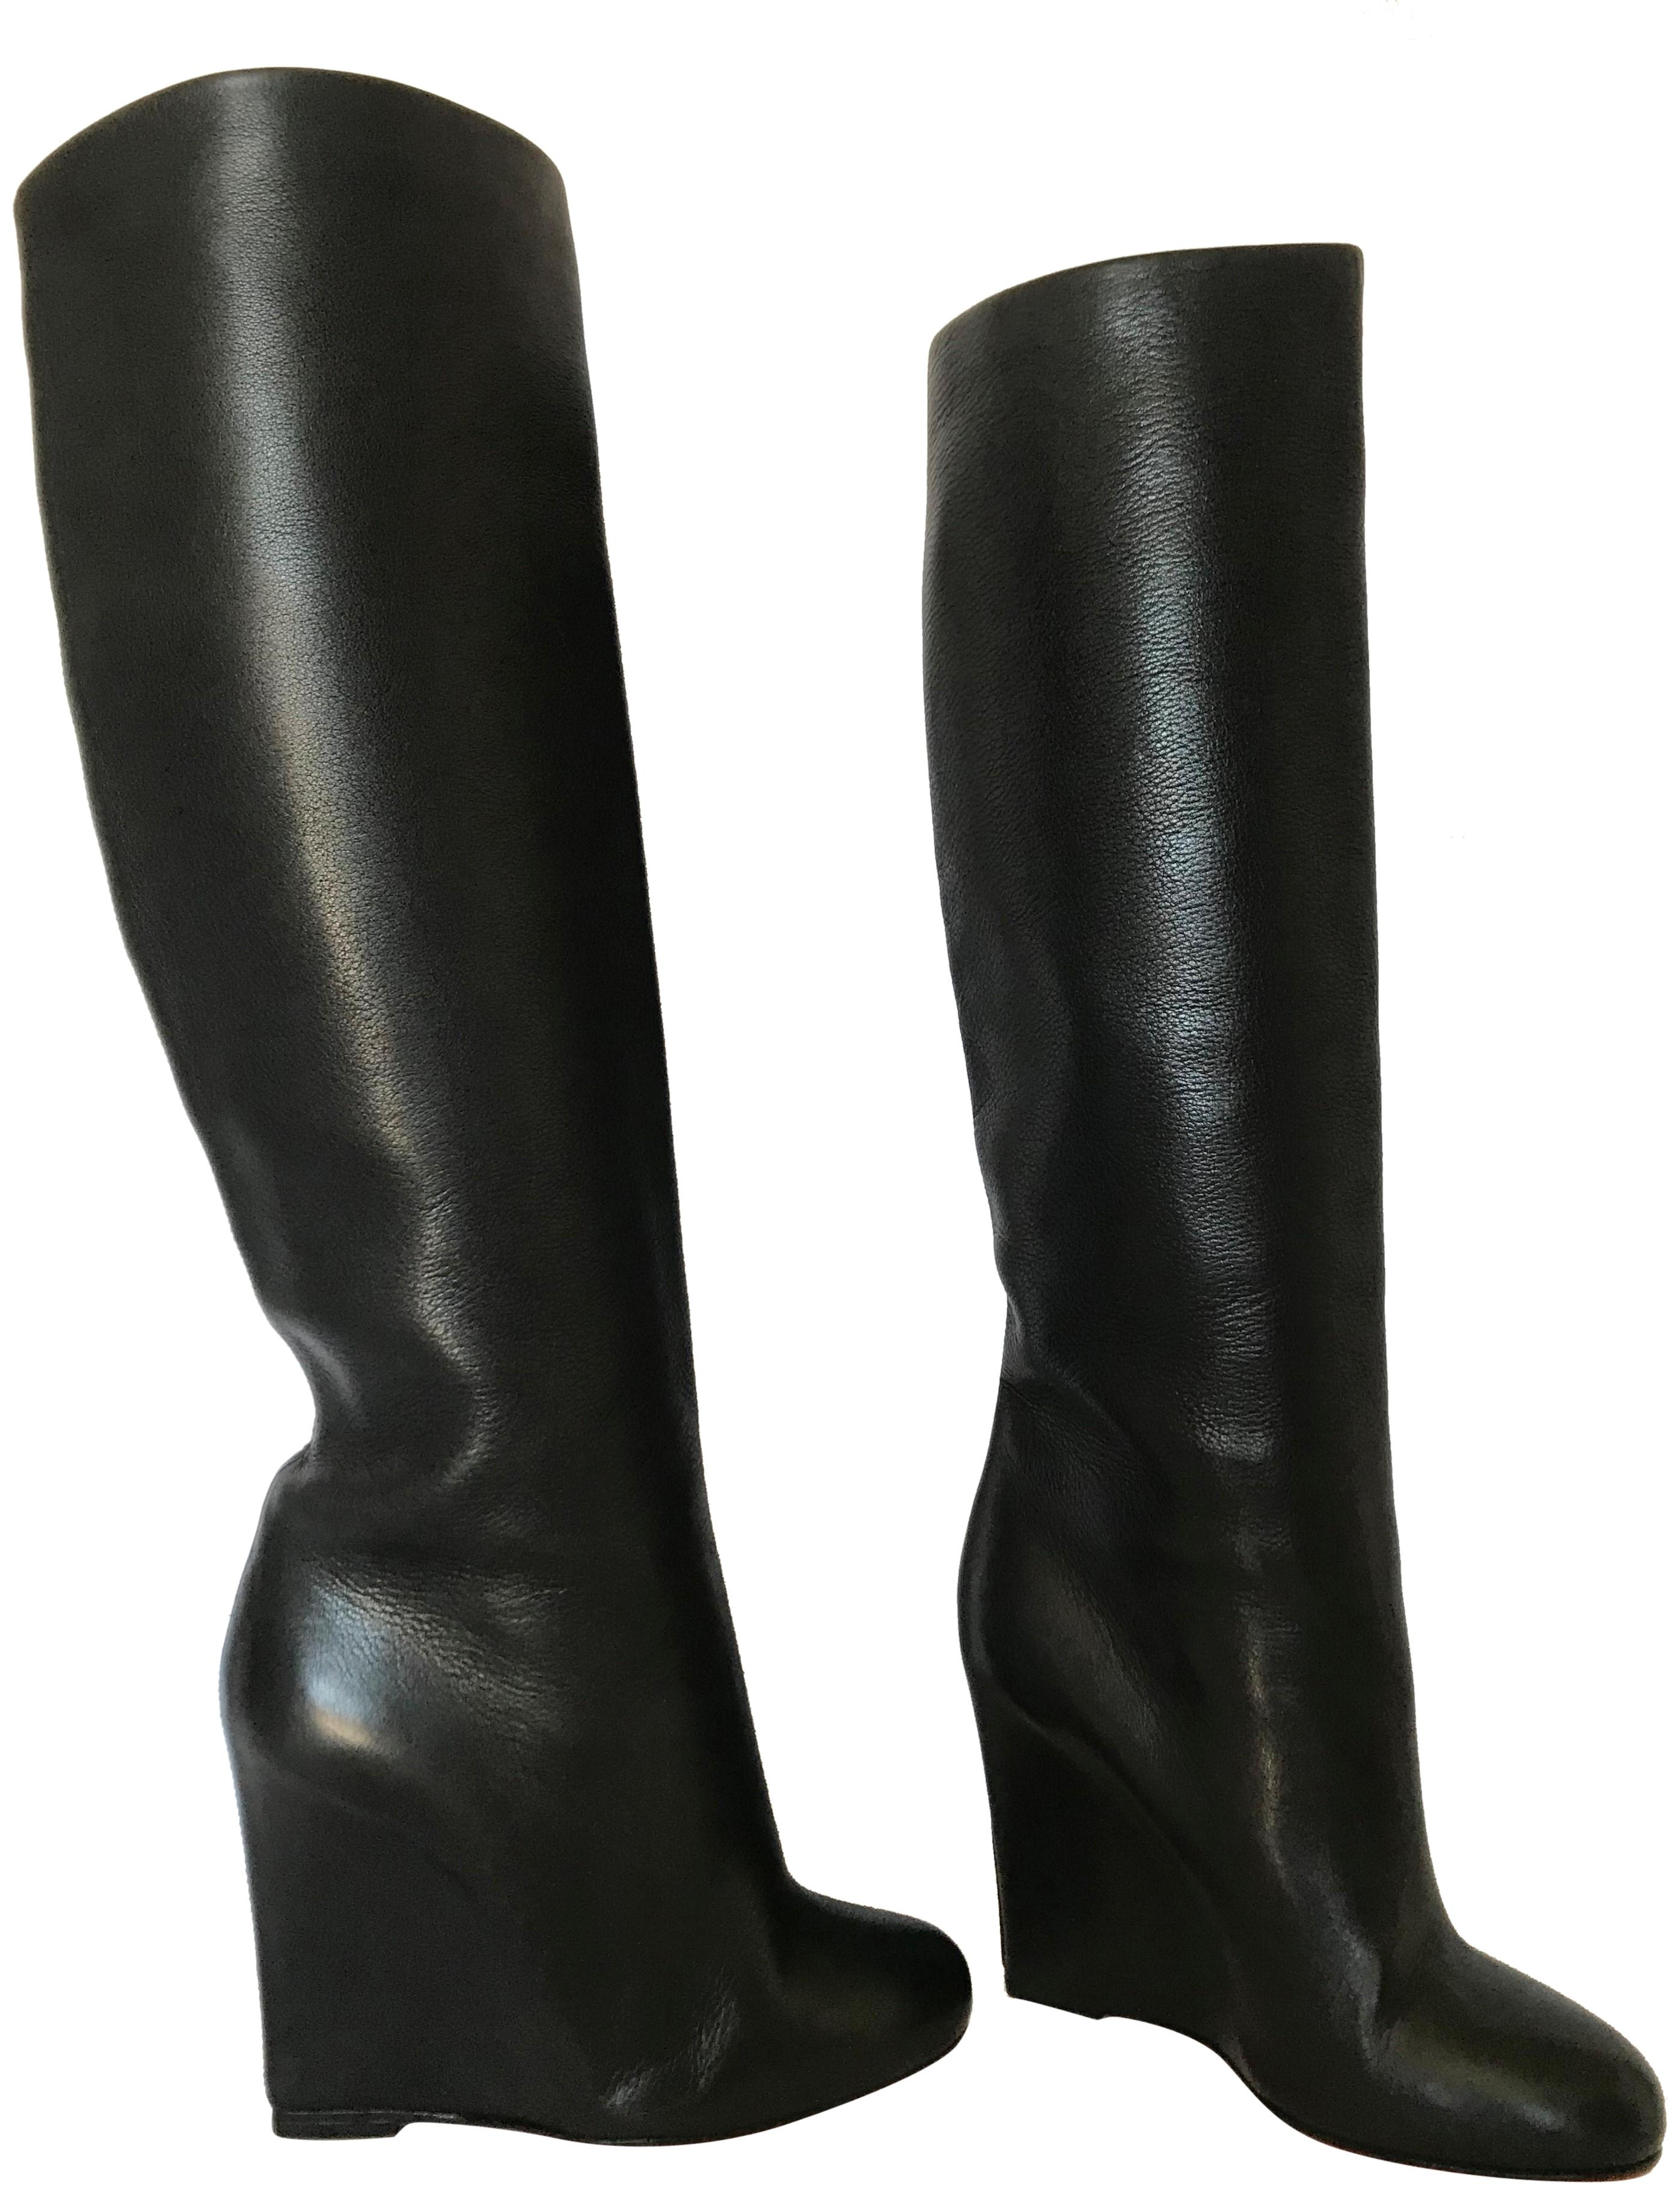 6475743c6184 ... Christian Louboutin Black 37.5it Knee High Lady Red Sole Ankle Alti Toe  100 Wedge Heel Boots Booties Size EU 37.5 (Approx. US 7.5) Regular (M